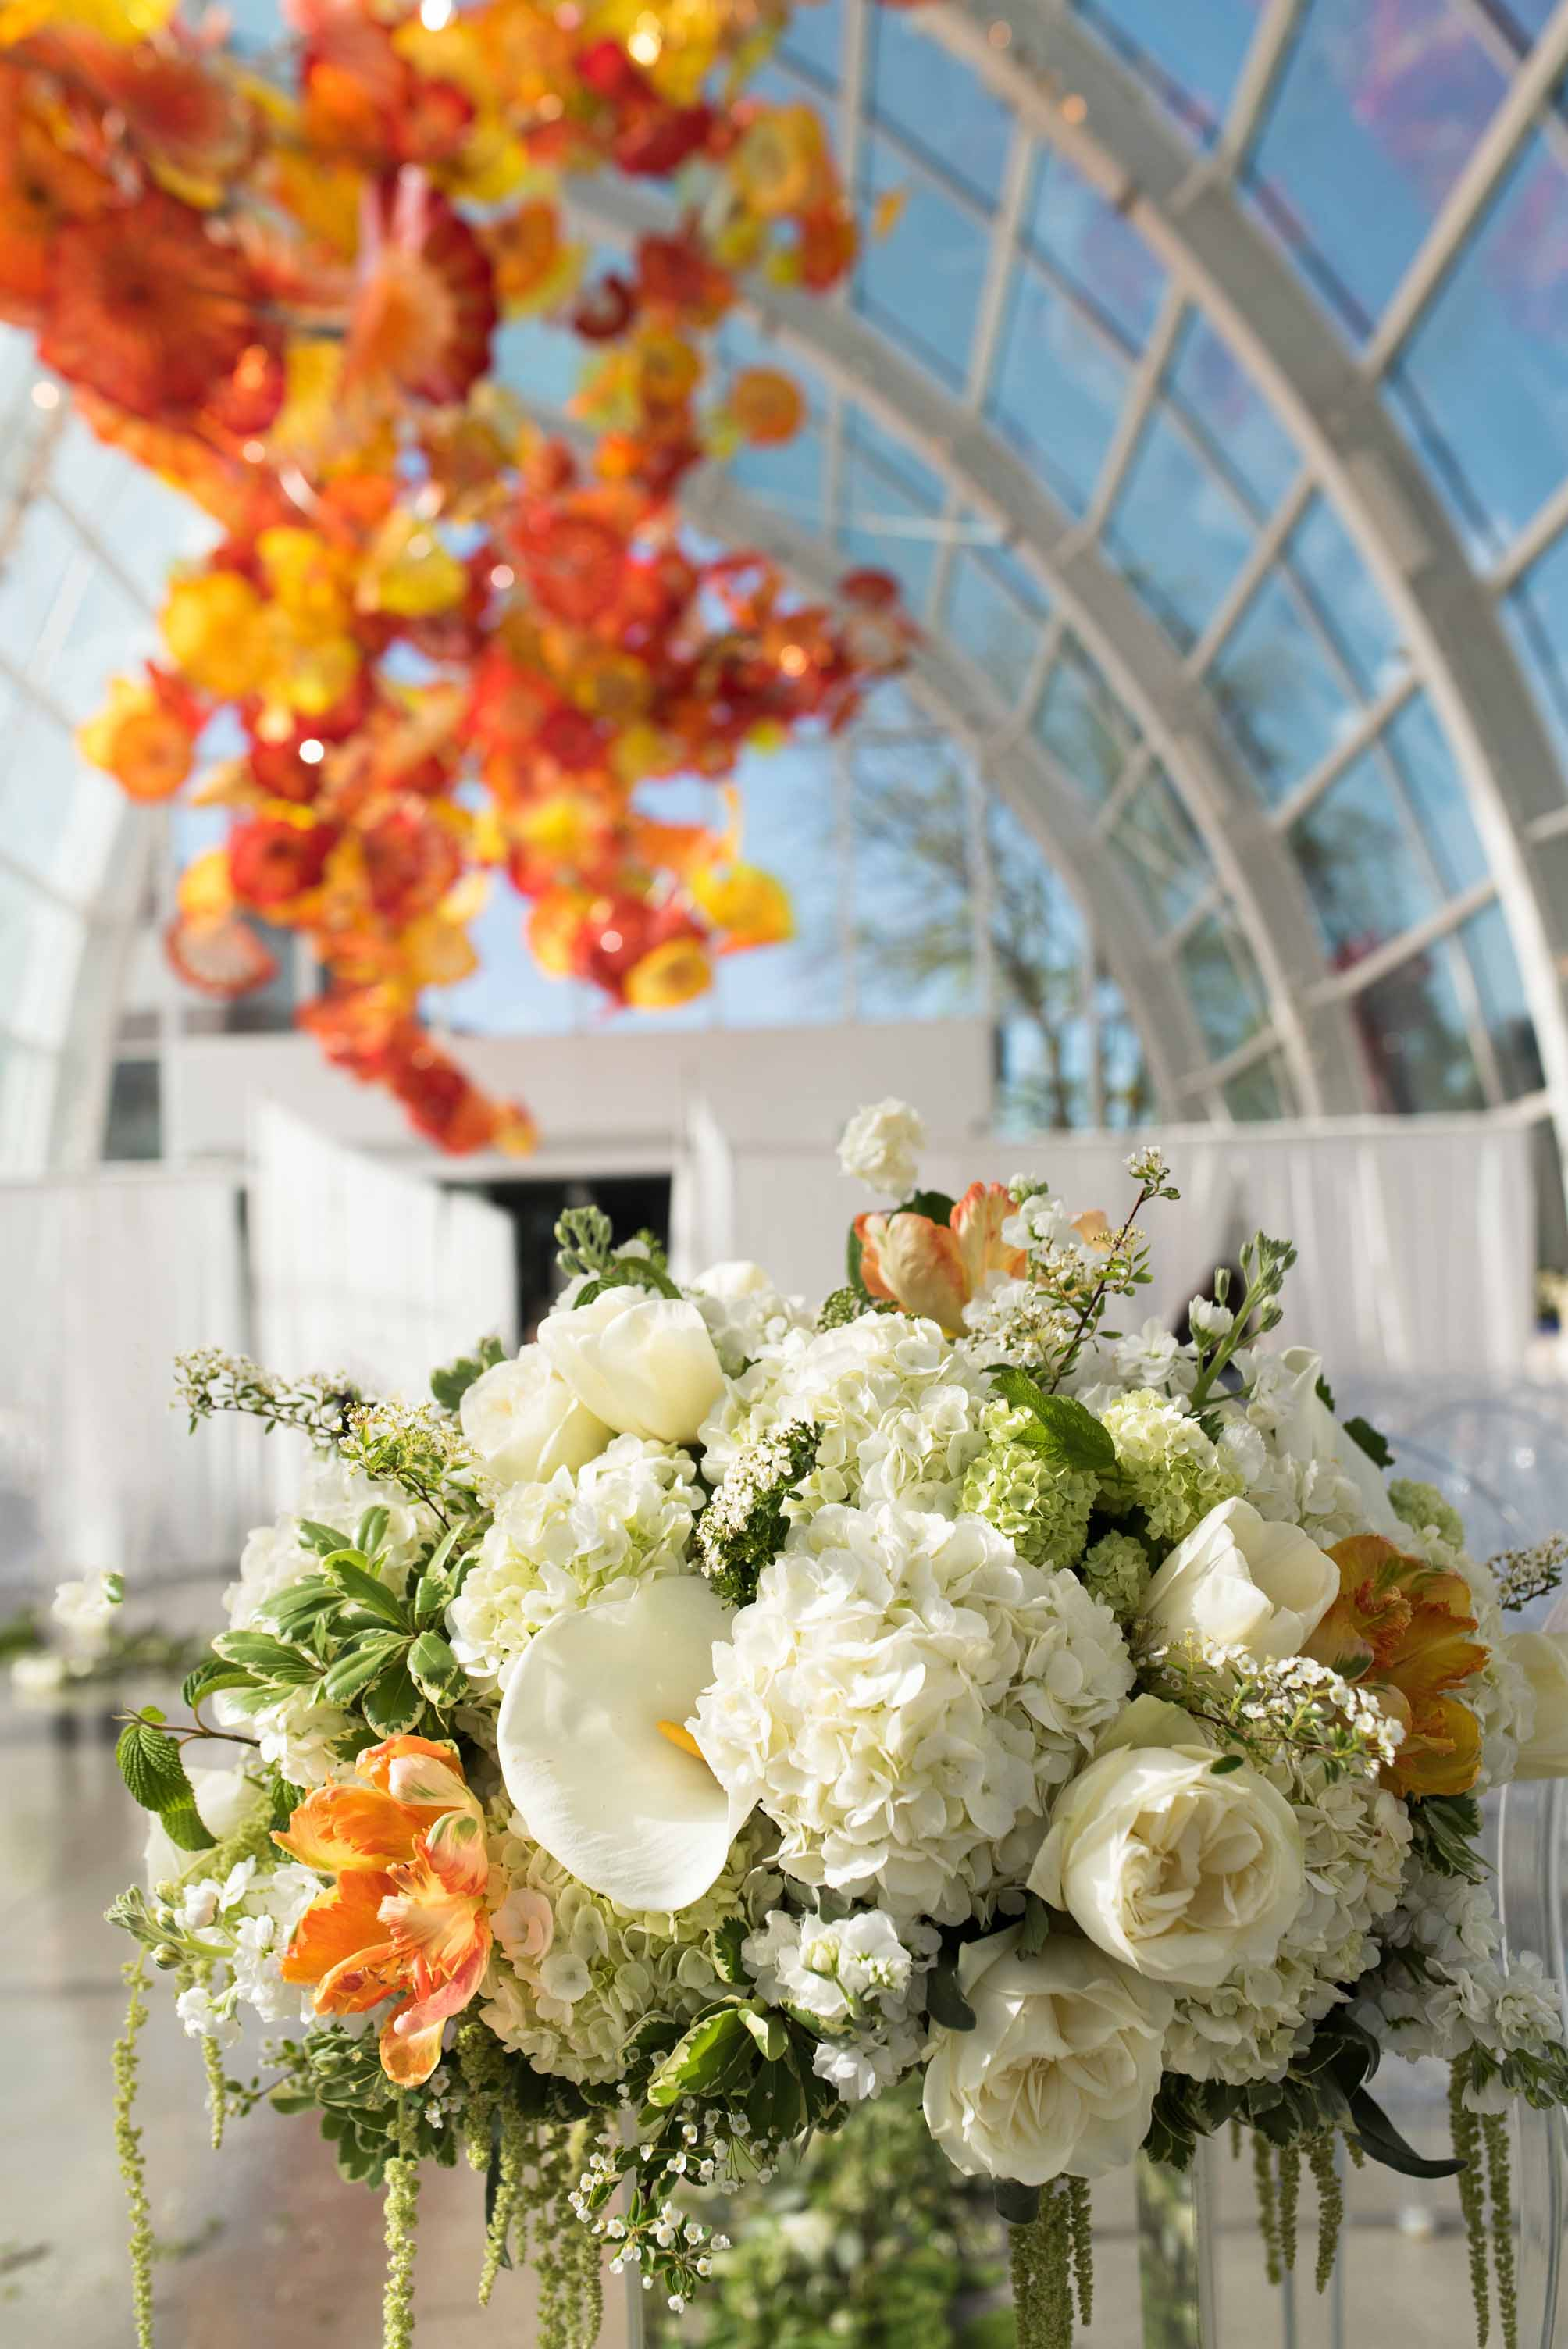 Large white and orange flower design with white calla lilies, white hydrangea, white roses, orange parrot tulips, and spring greenery inside Chihuly glass house in Seattle